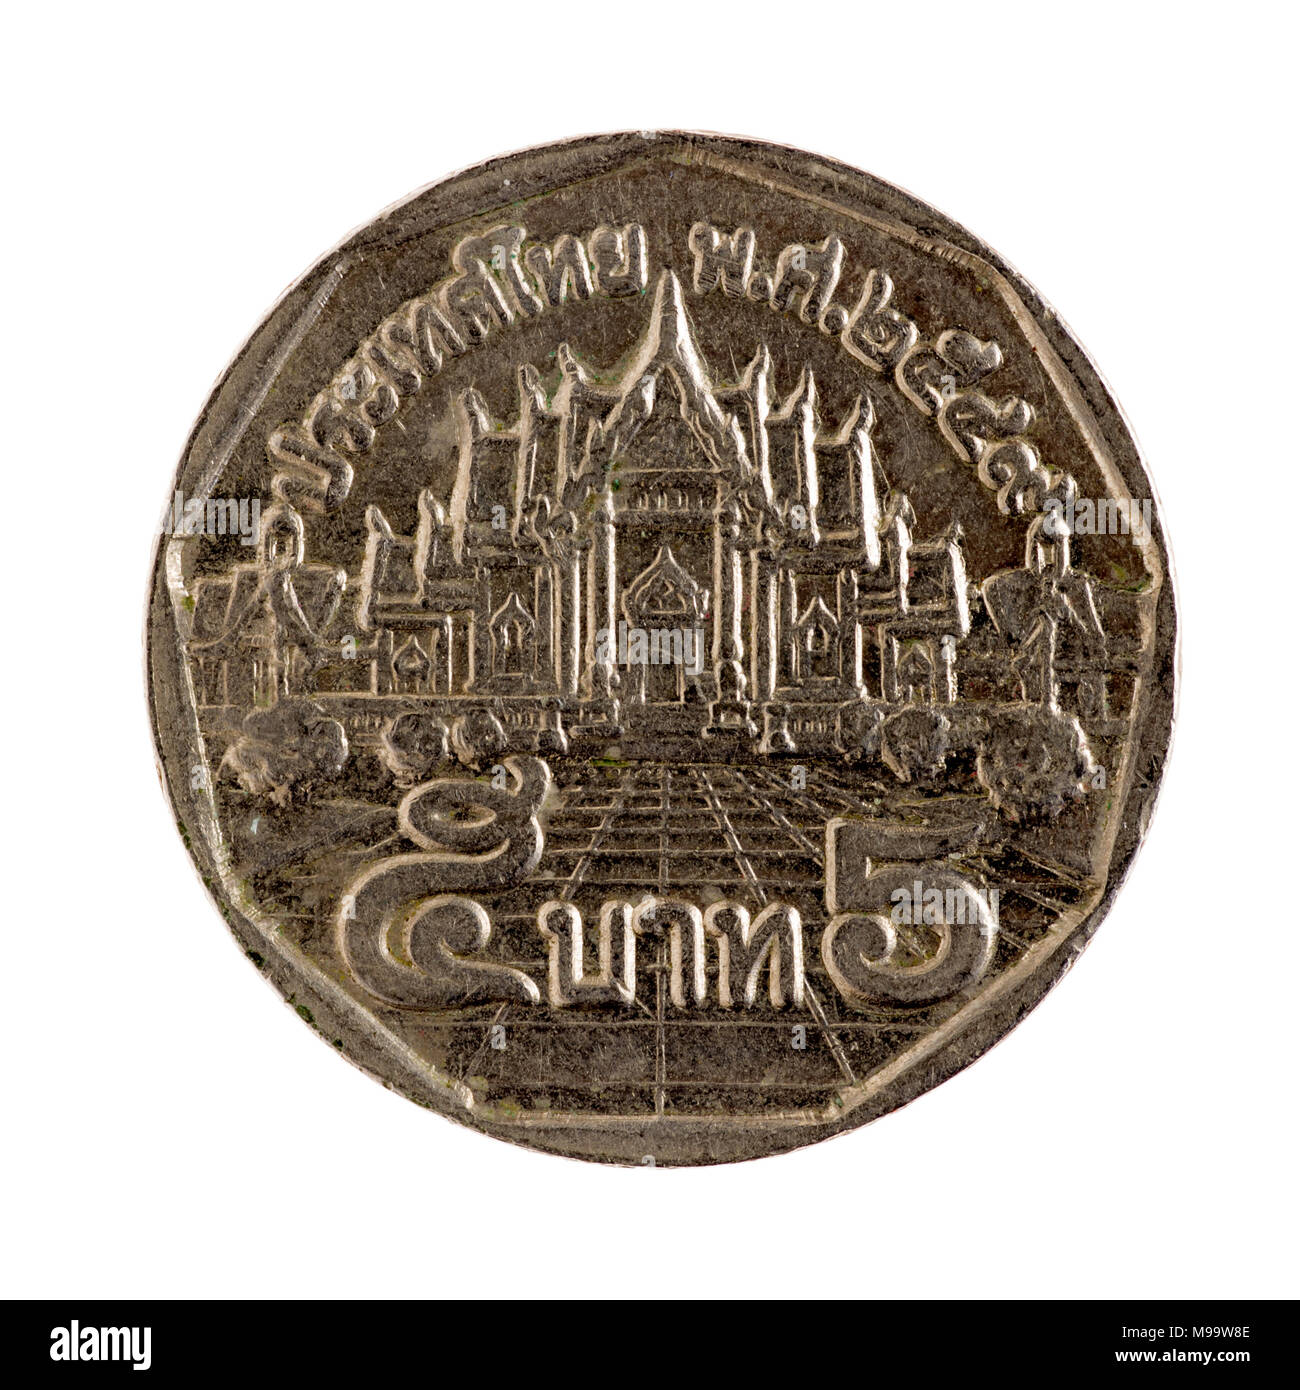 5 Baht coin from Thailand - Stock Image